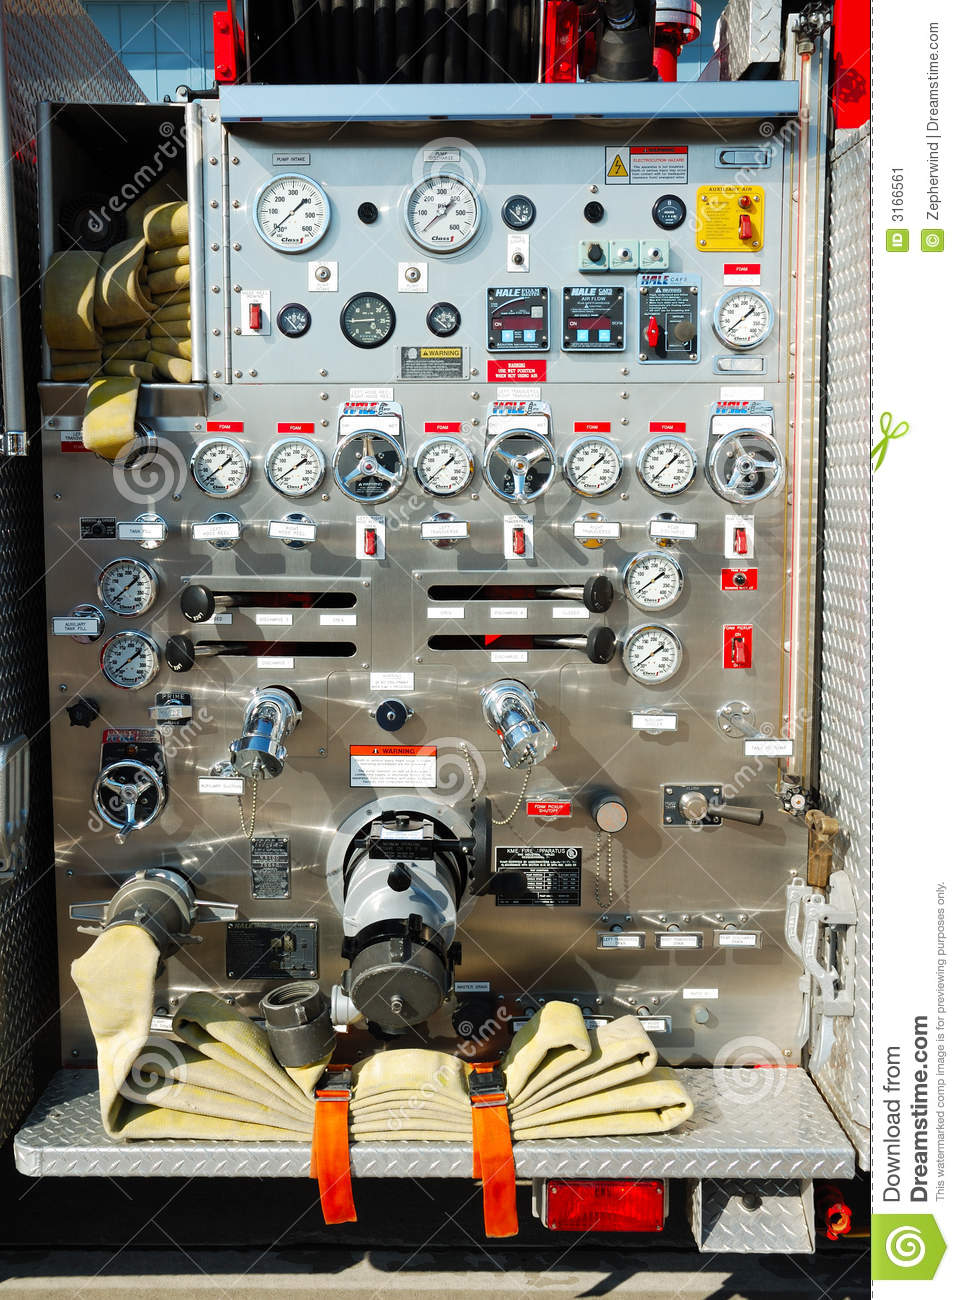 medium resolution of fire truck control panel stock image image of fight help truck engine parts diagram mack truck